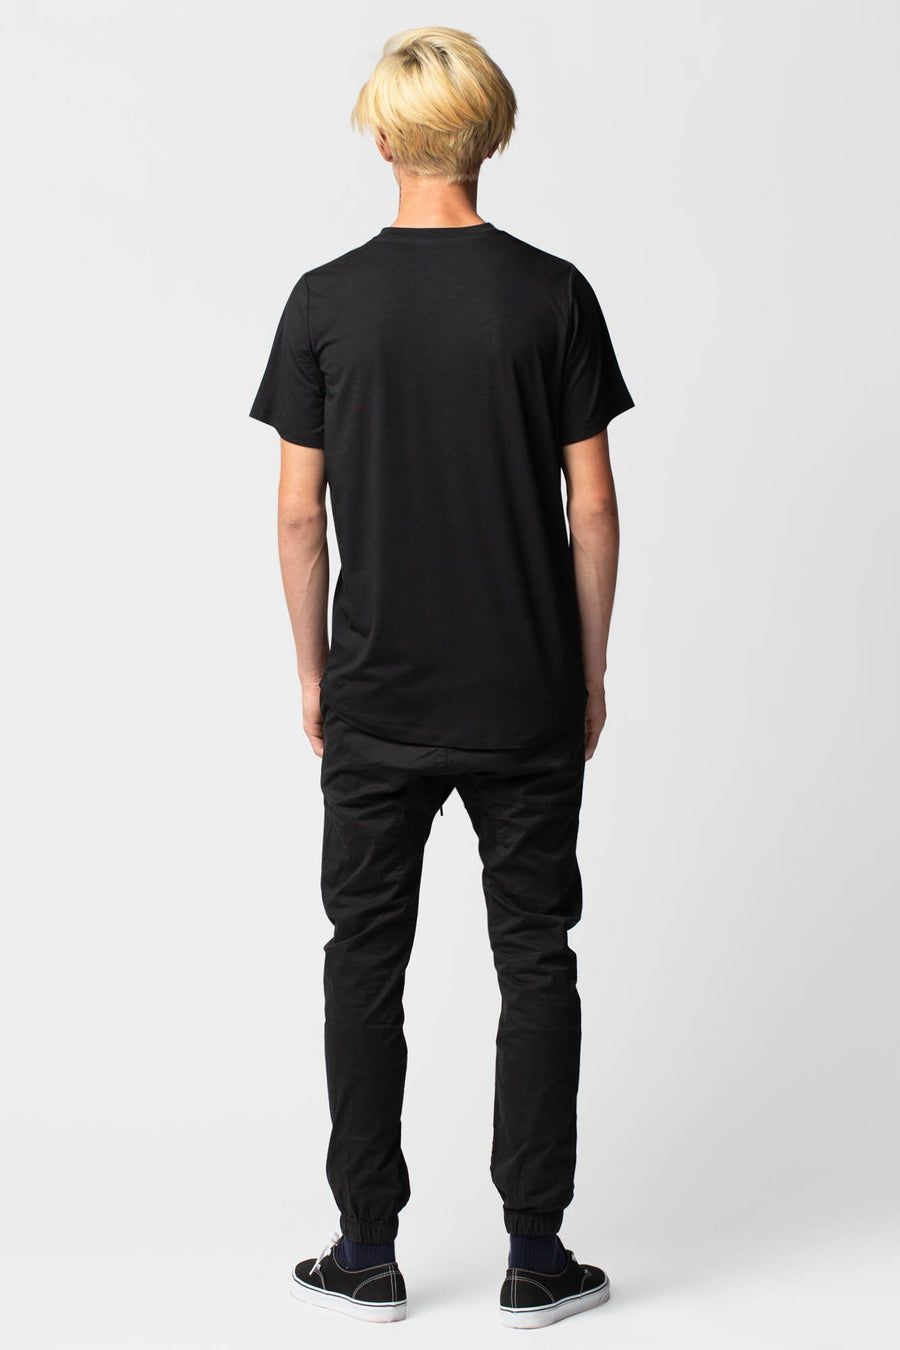 Classic Stealth Tee